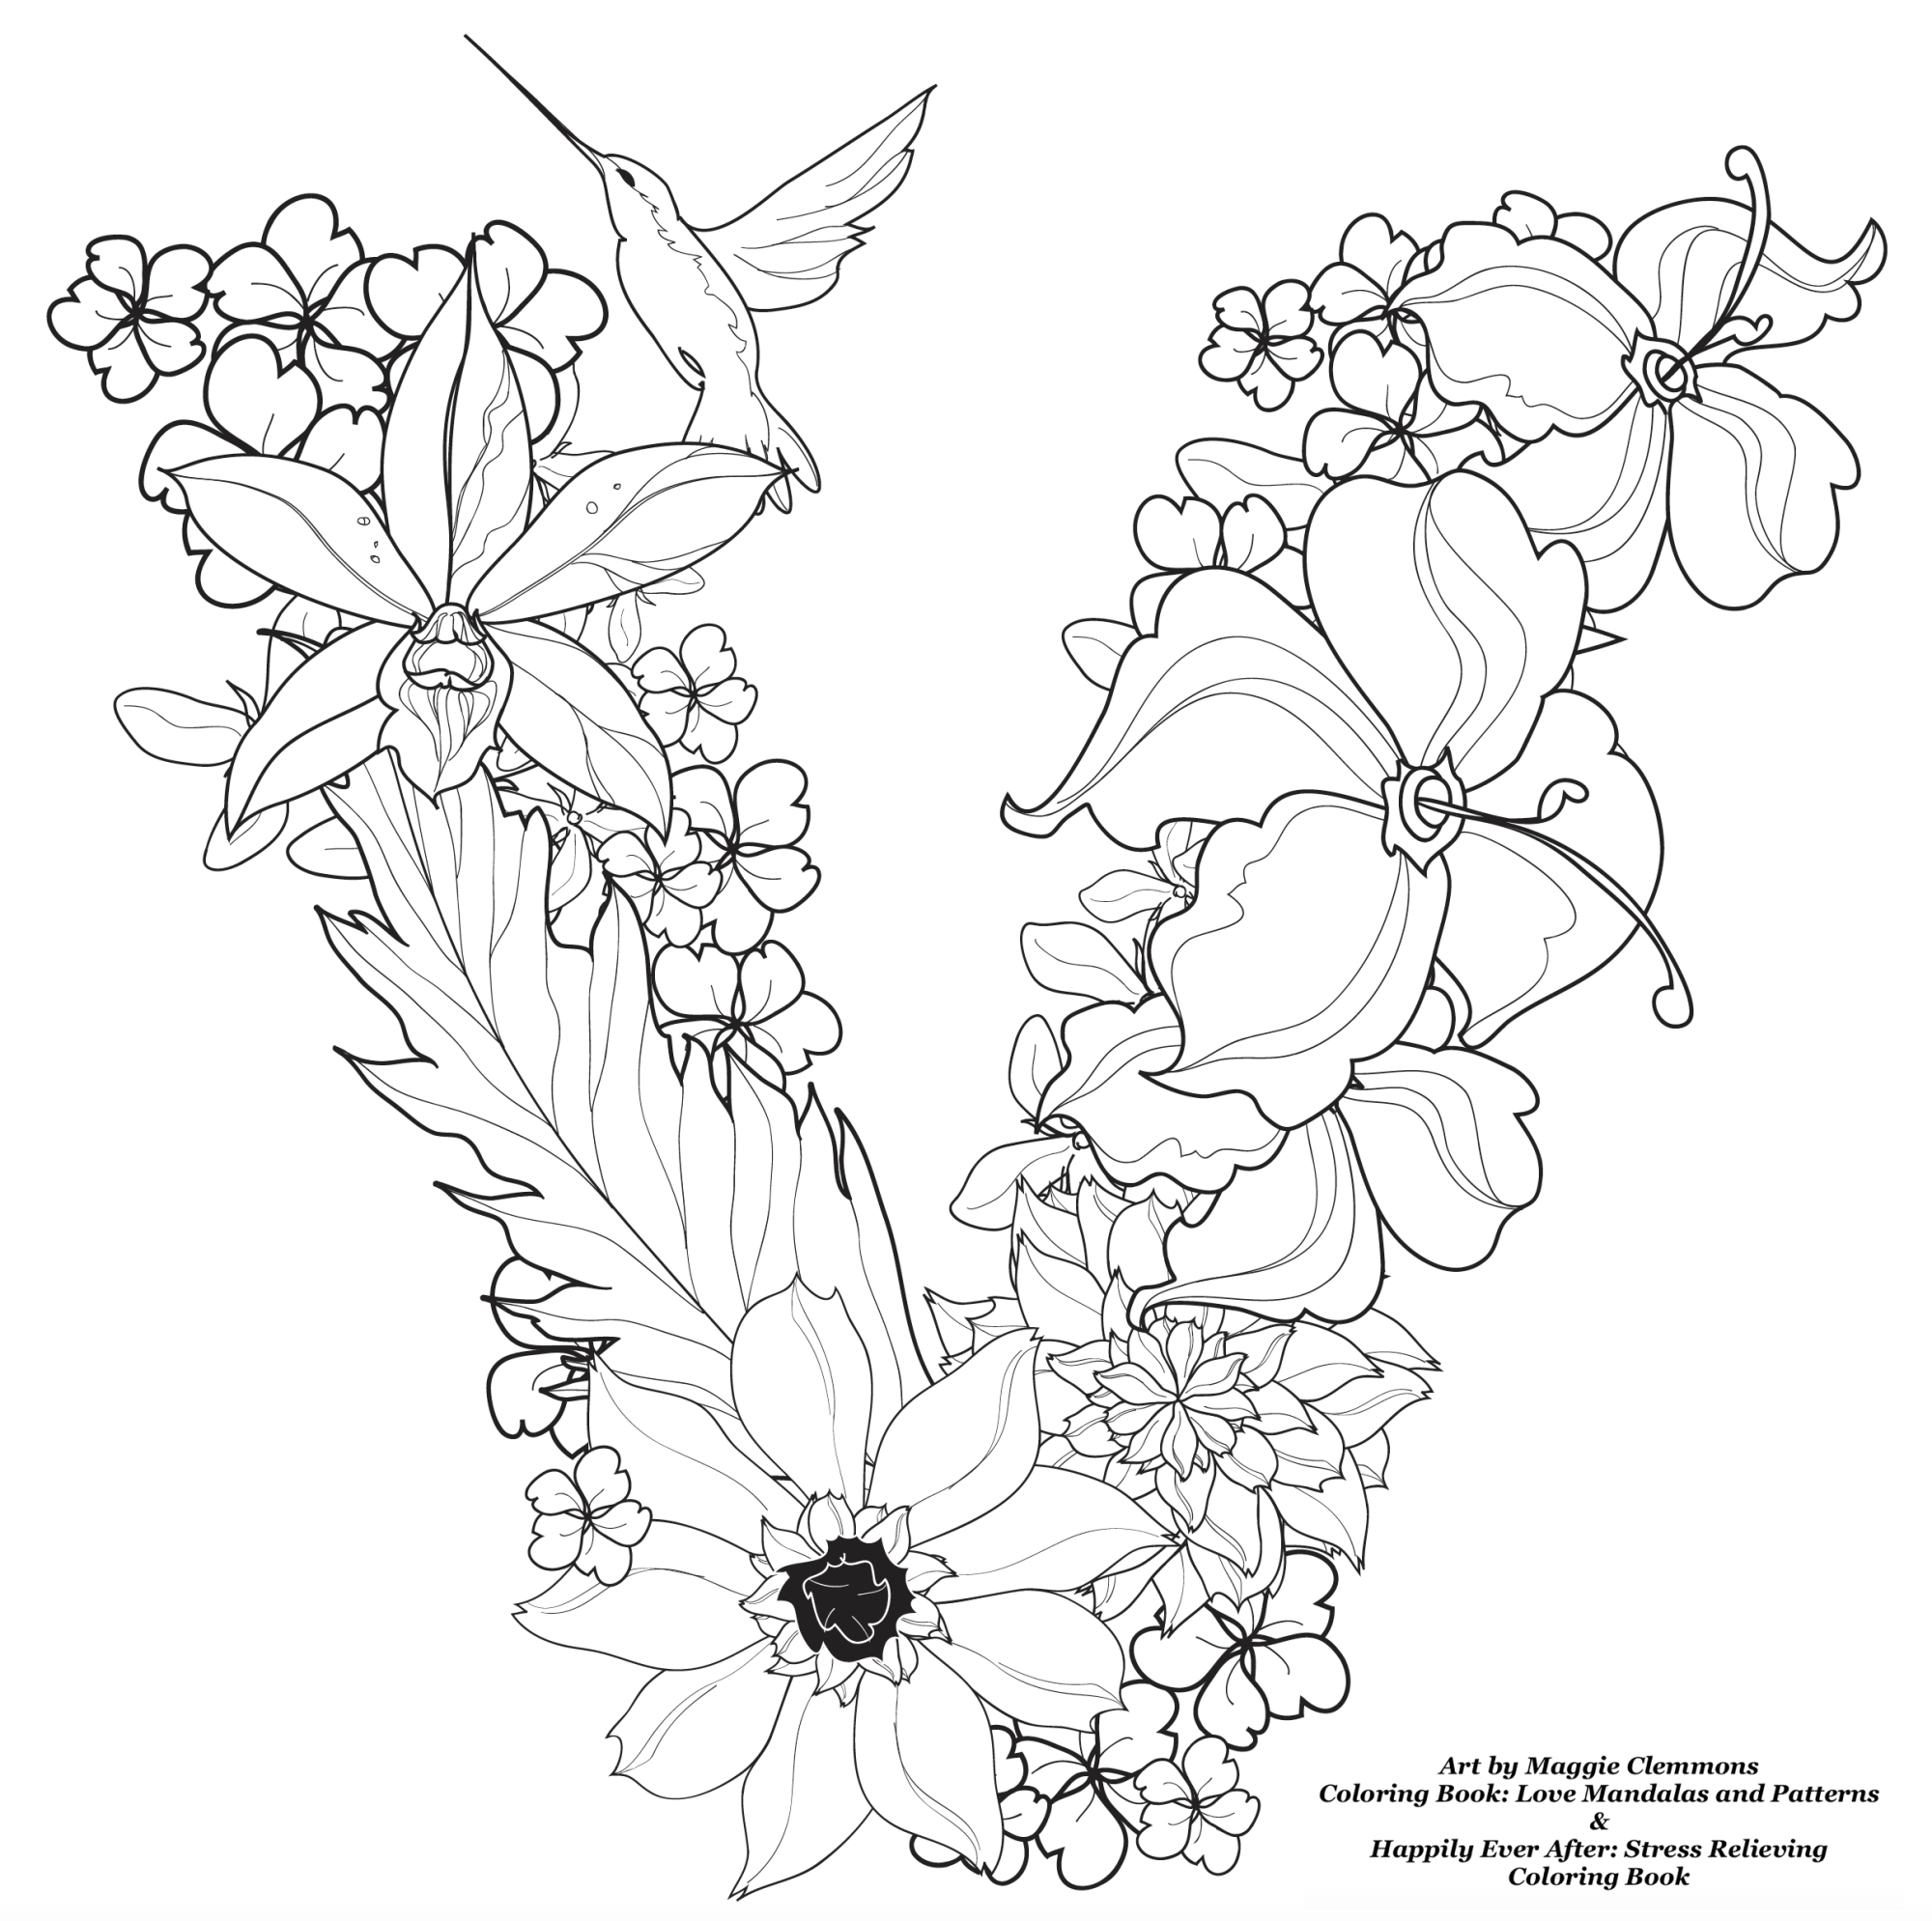 Free Coloring Pages From Adult Worldwide Art By Maggie A548bb63713deb3dafc4409ec0515244 800796377461903687 Love Mandala